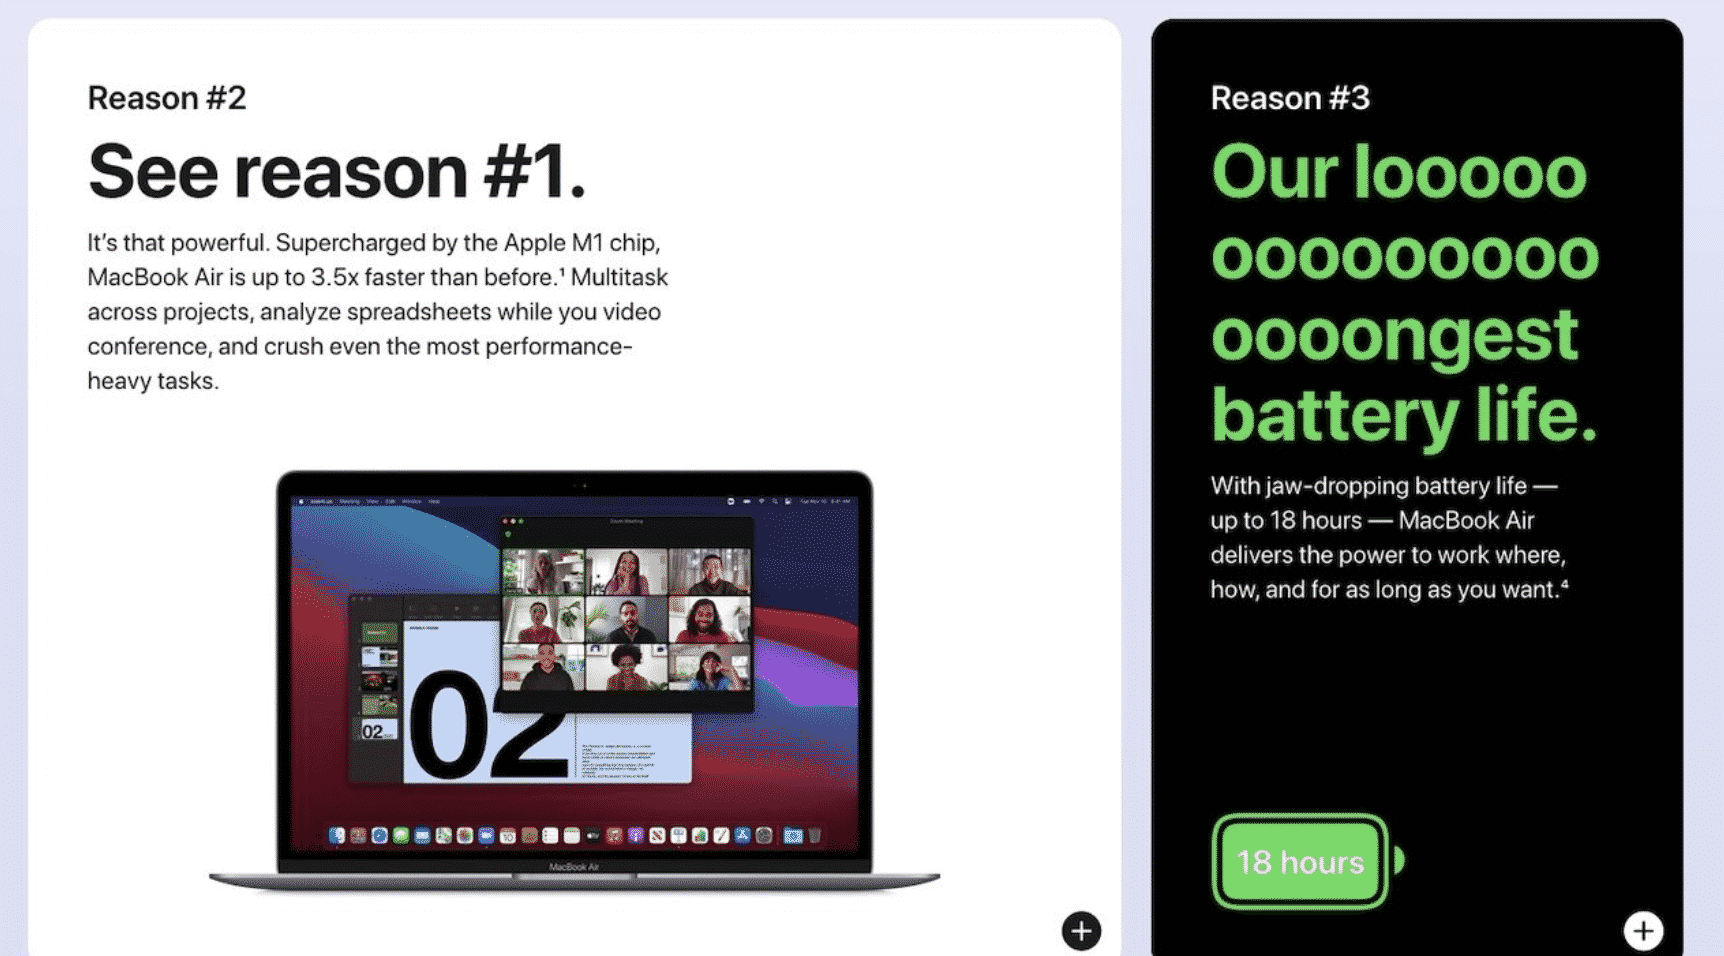 Apple updates web content, shows why businesses should choose Mac